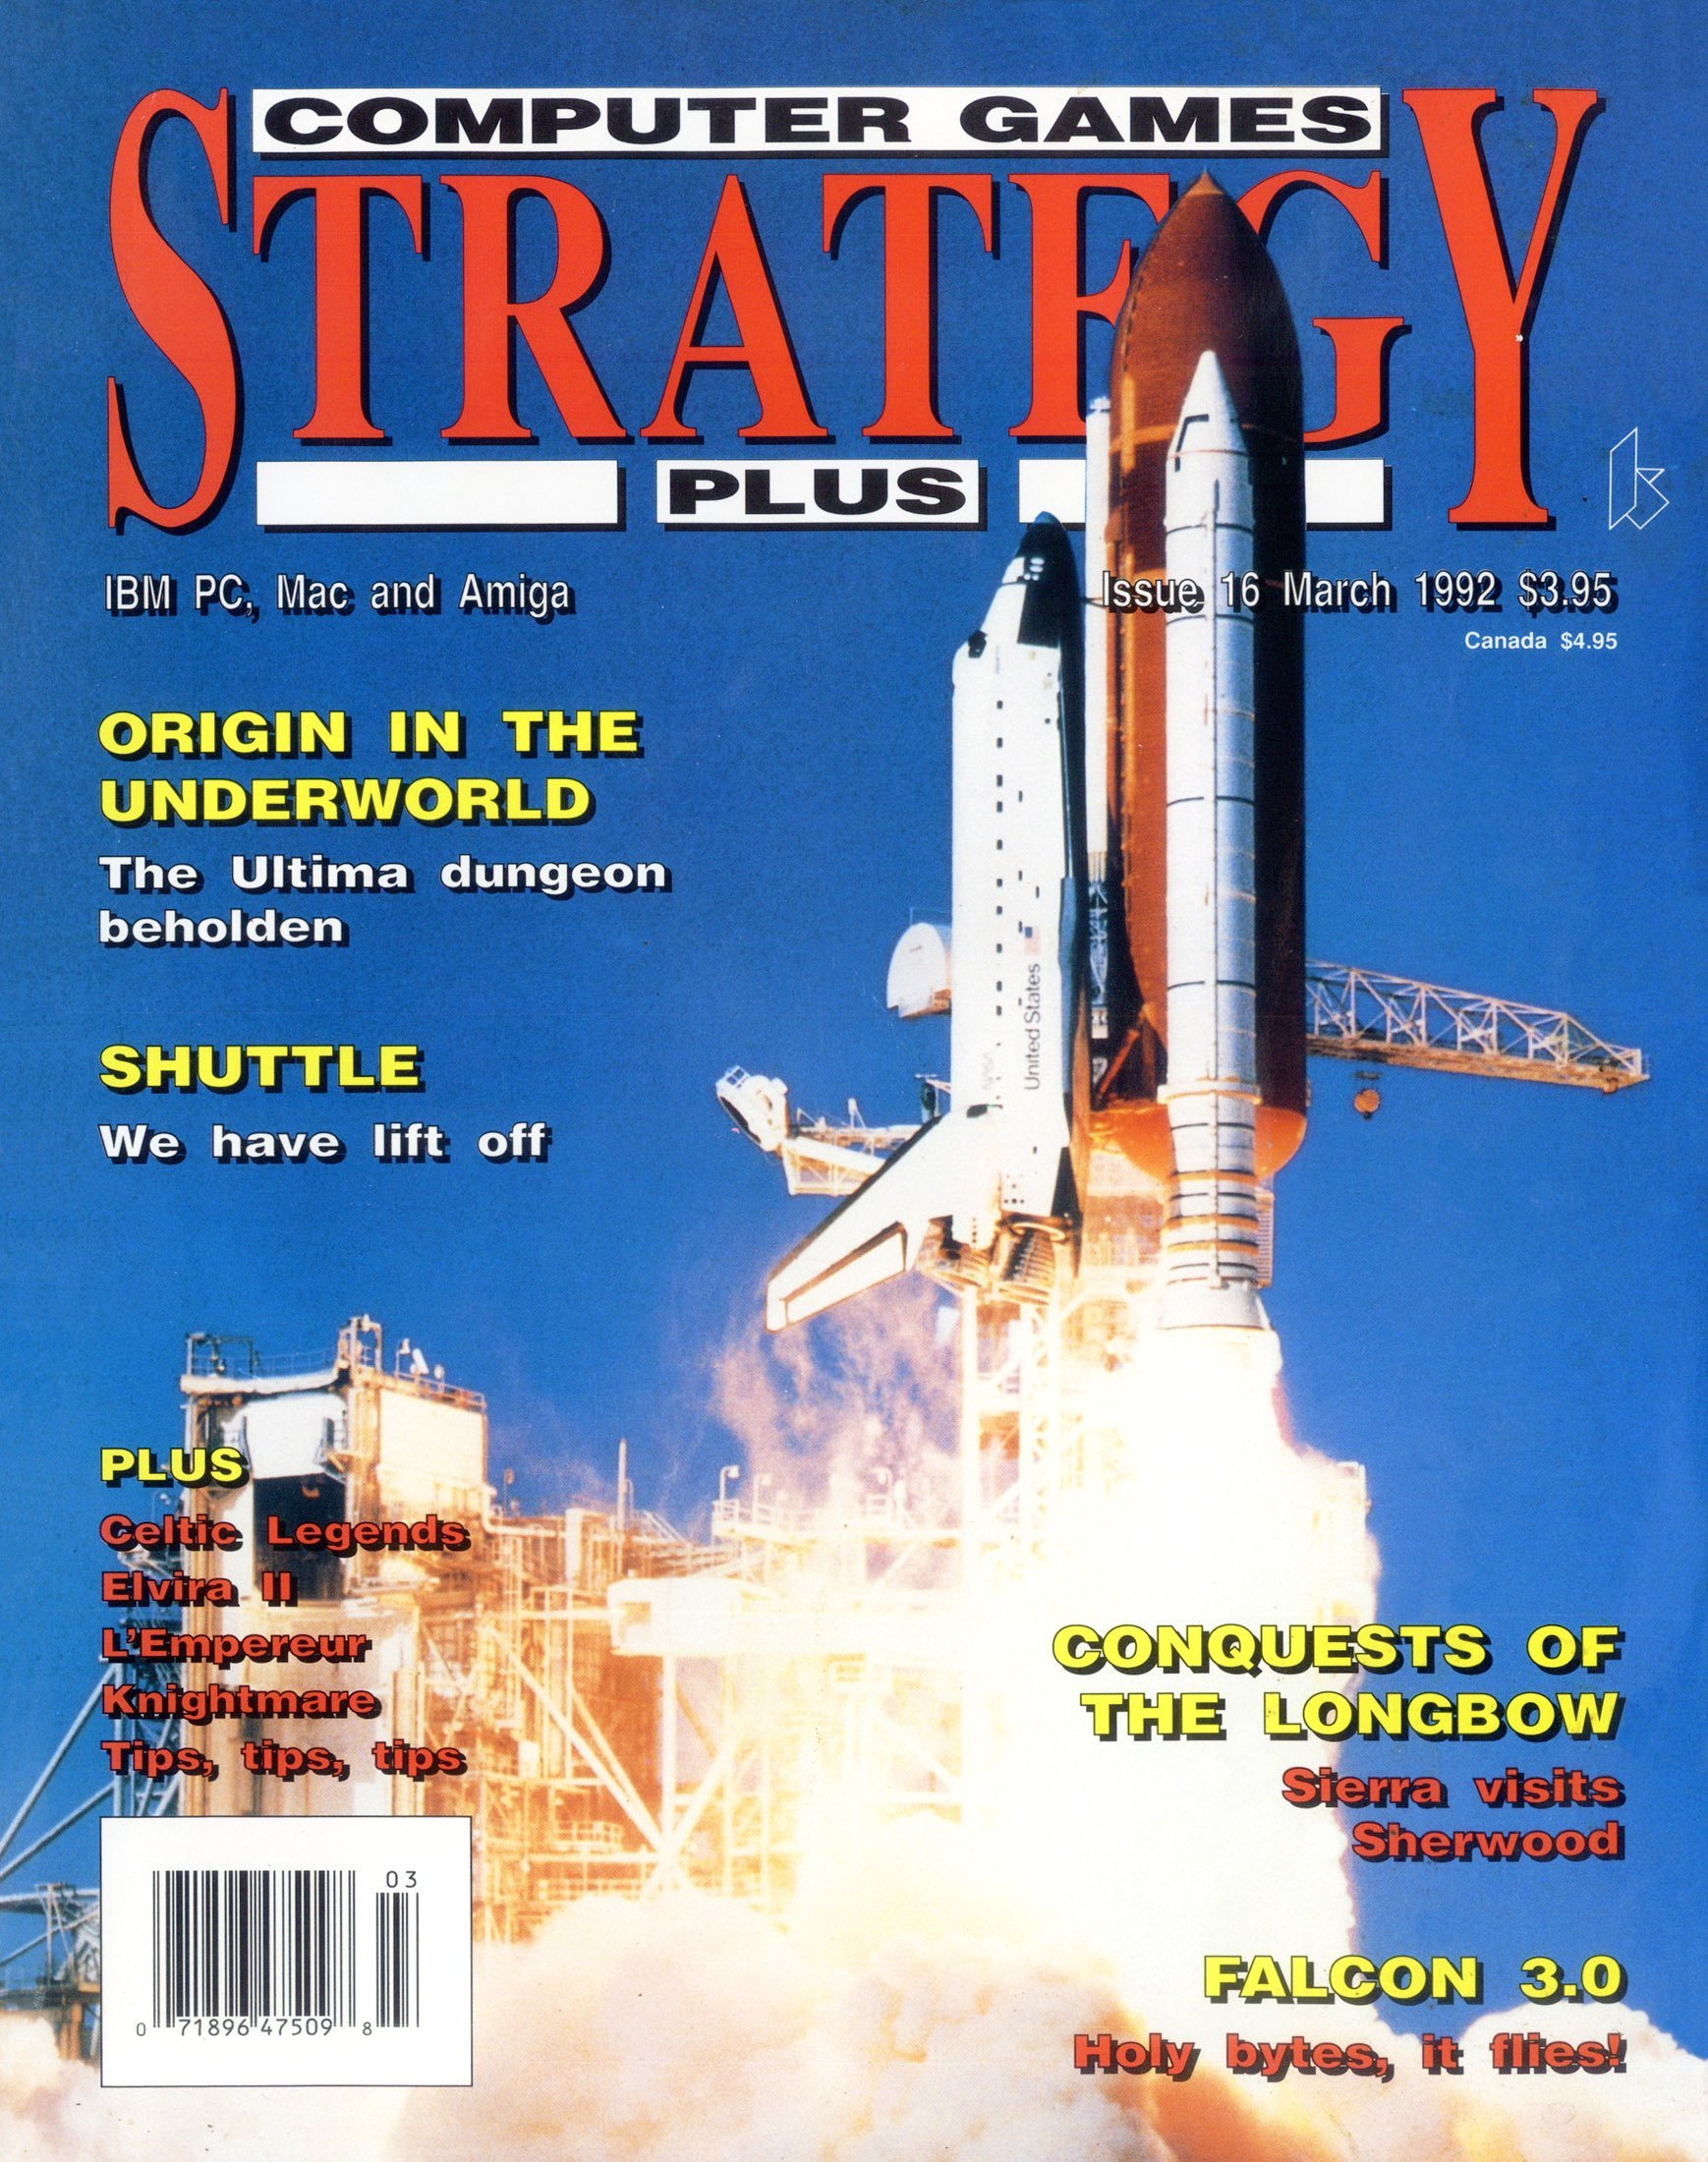 Computer Games Strategy Plus Issue 016 (March 1992) (USA edition)